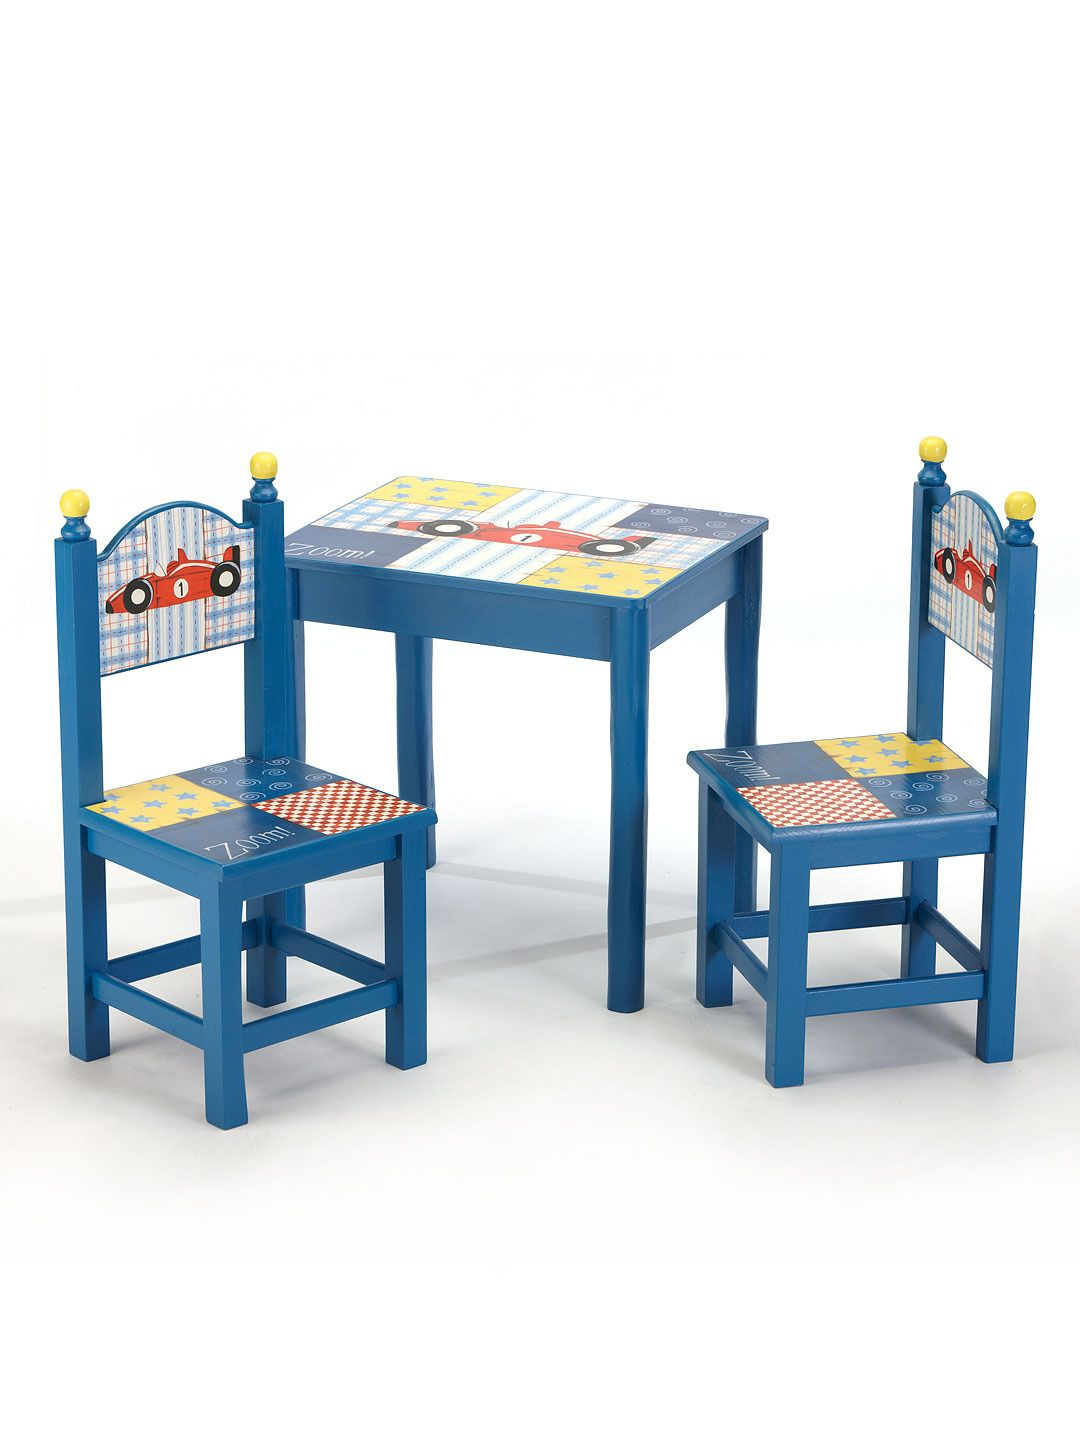 Racecar Chair Table Set By Kindergarten Plus At Gilt Table And Chairs Chair Set Racecar Themed Bedroom